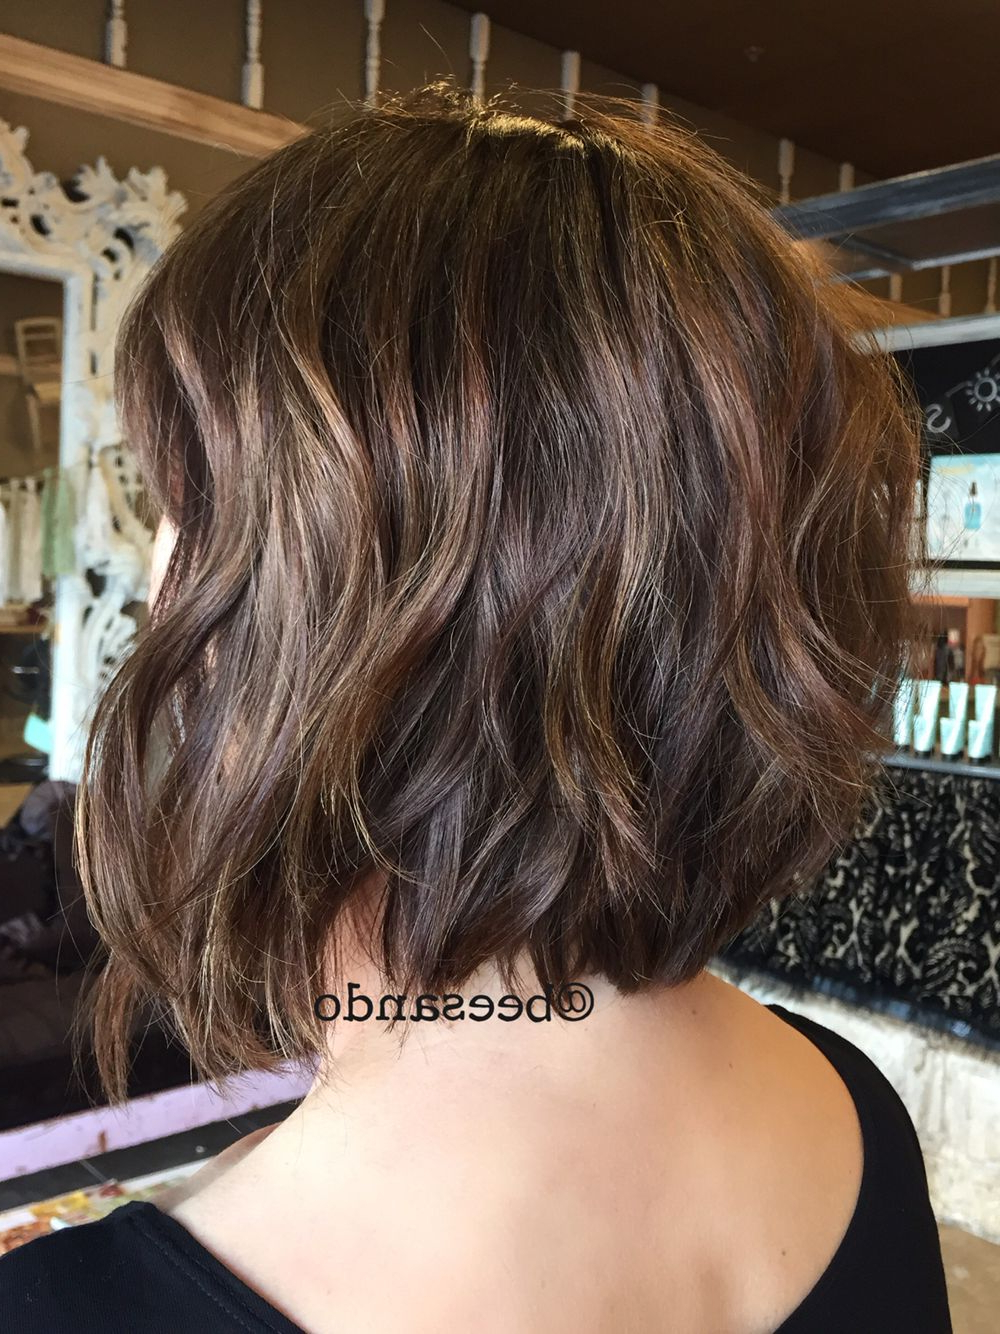 Favorite Brunette Razor Haircuts With Bangs Throughout Pin On Blondes, Bobs & Balayage (View 4 of 20)